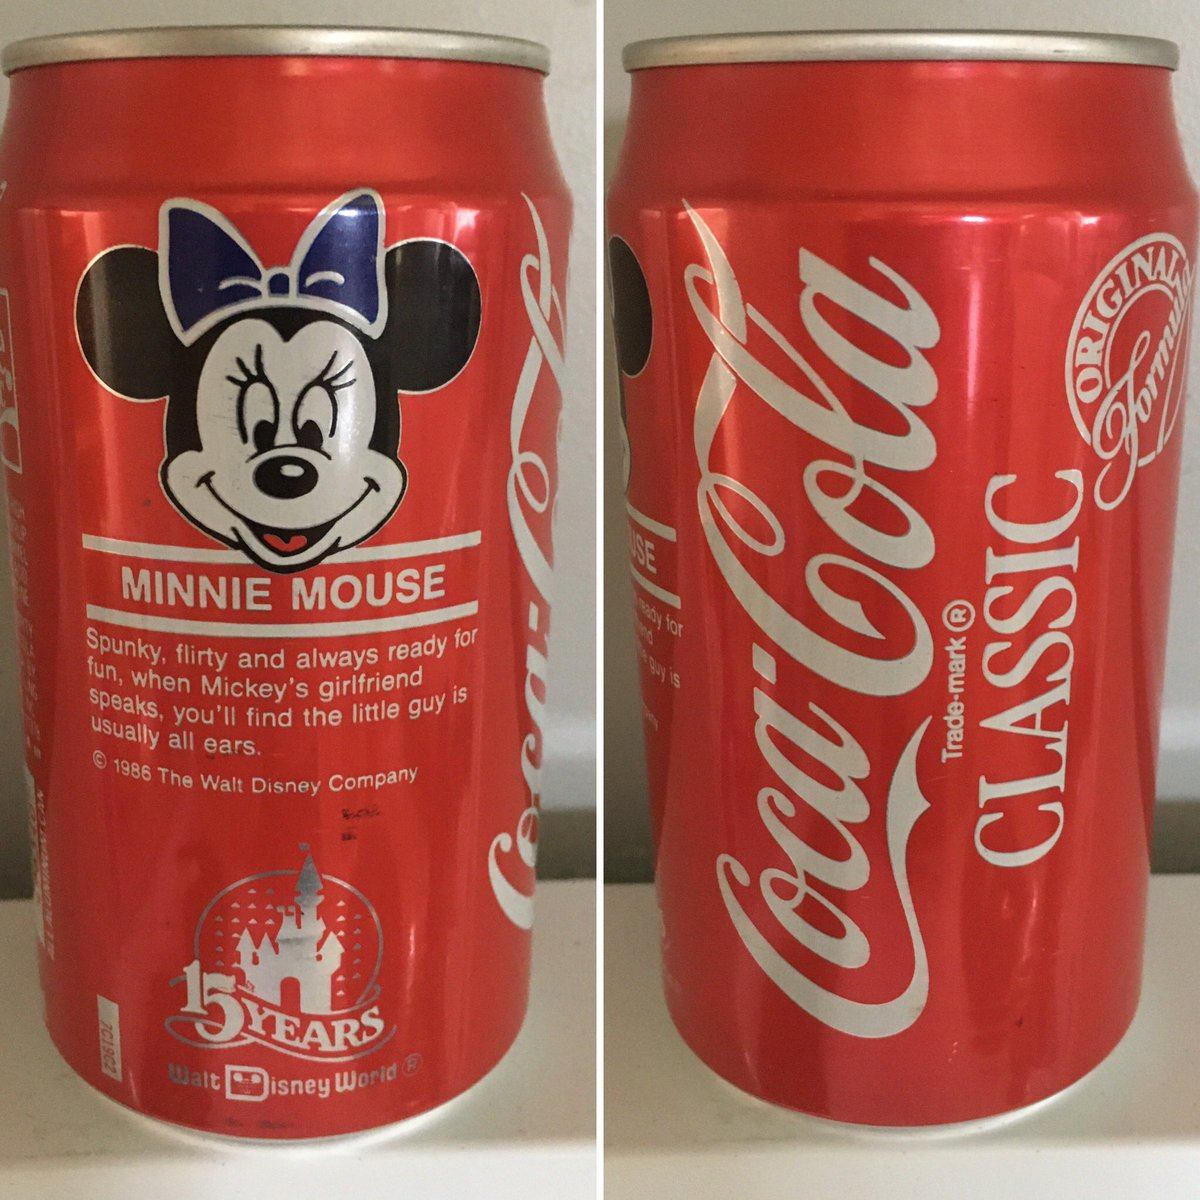 @CocaCola Classic Minnie Mouse @WaltDisneyWorld 15 Years #canmuseum